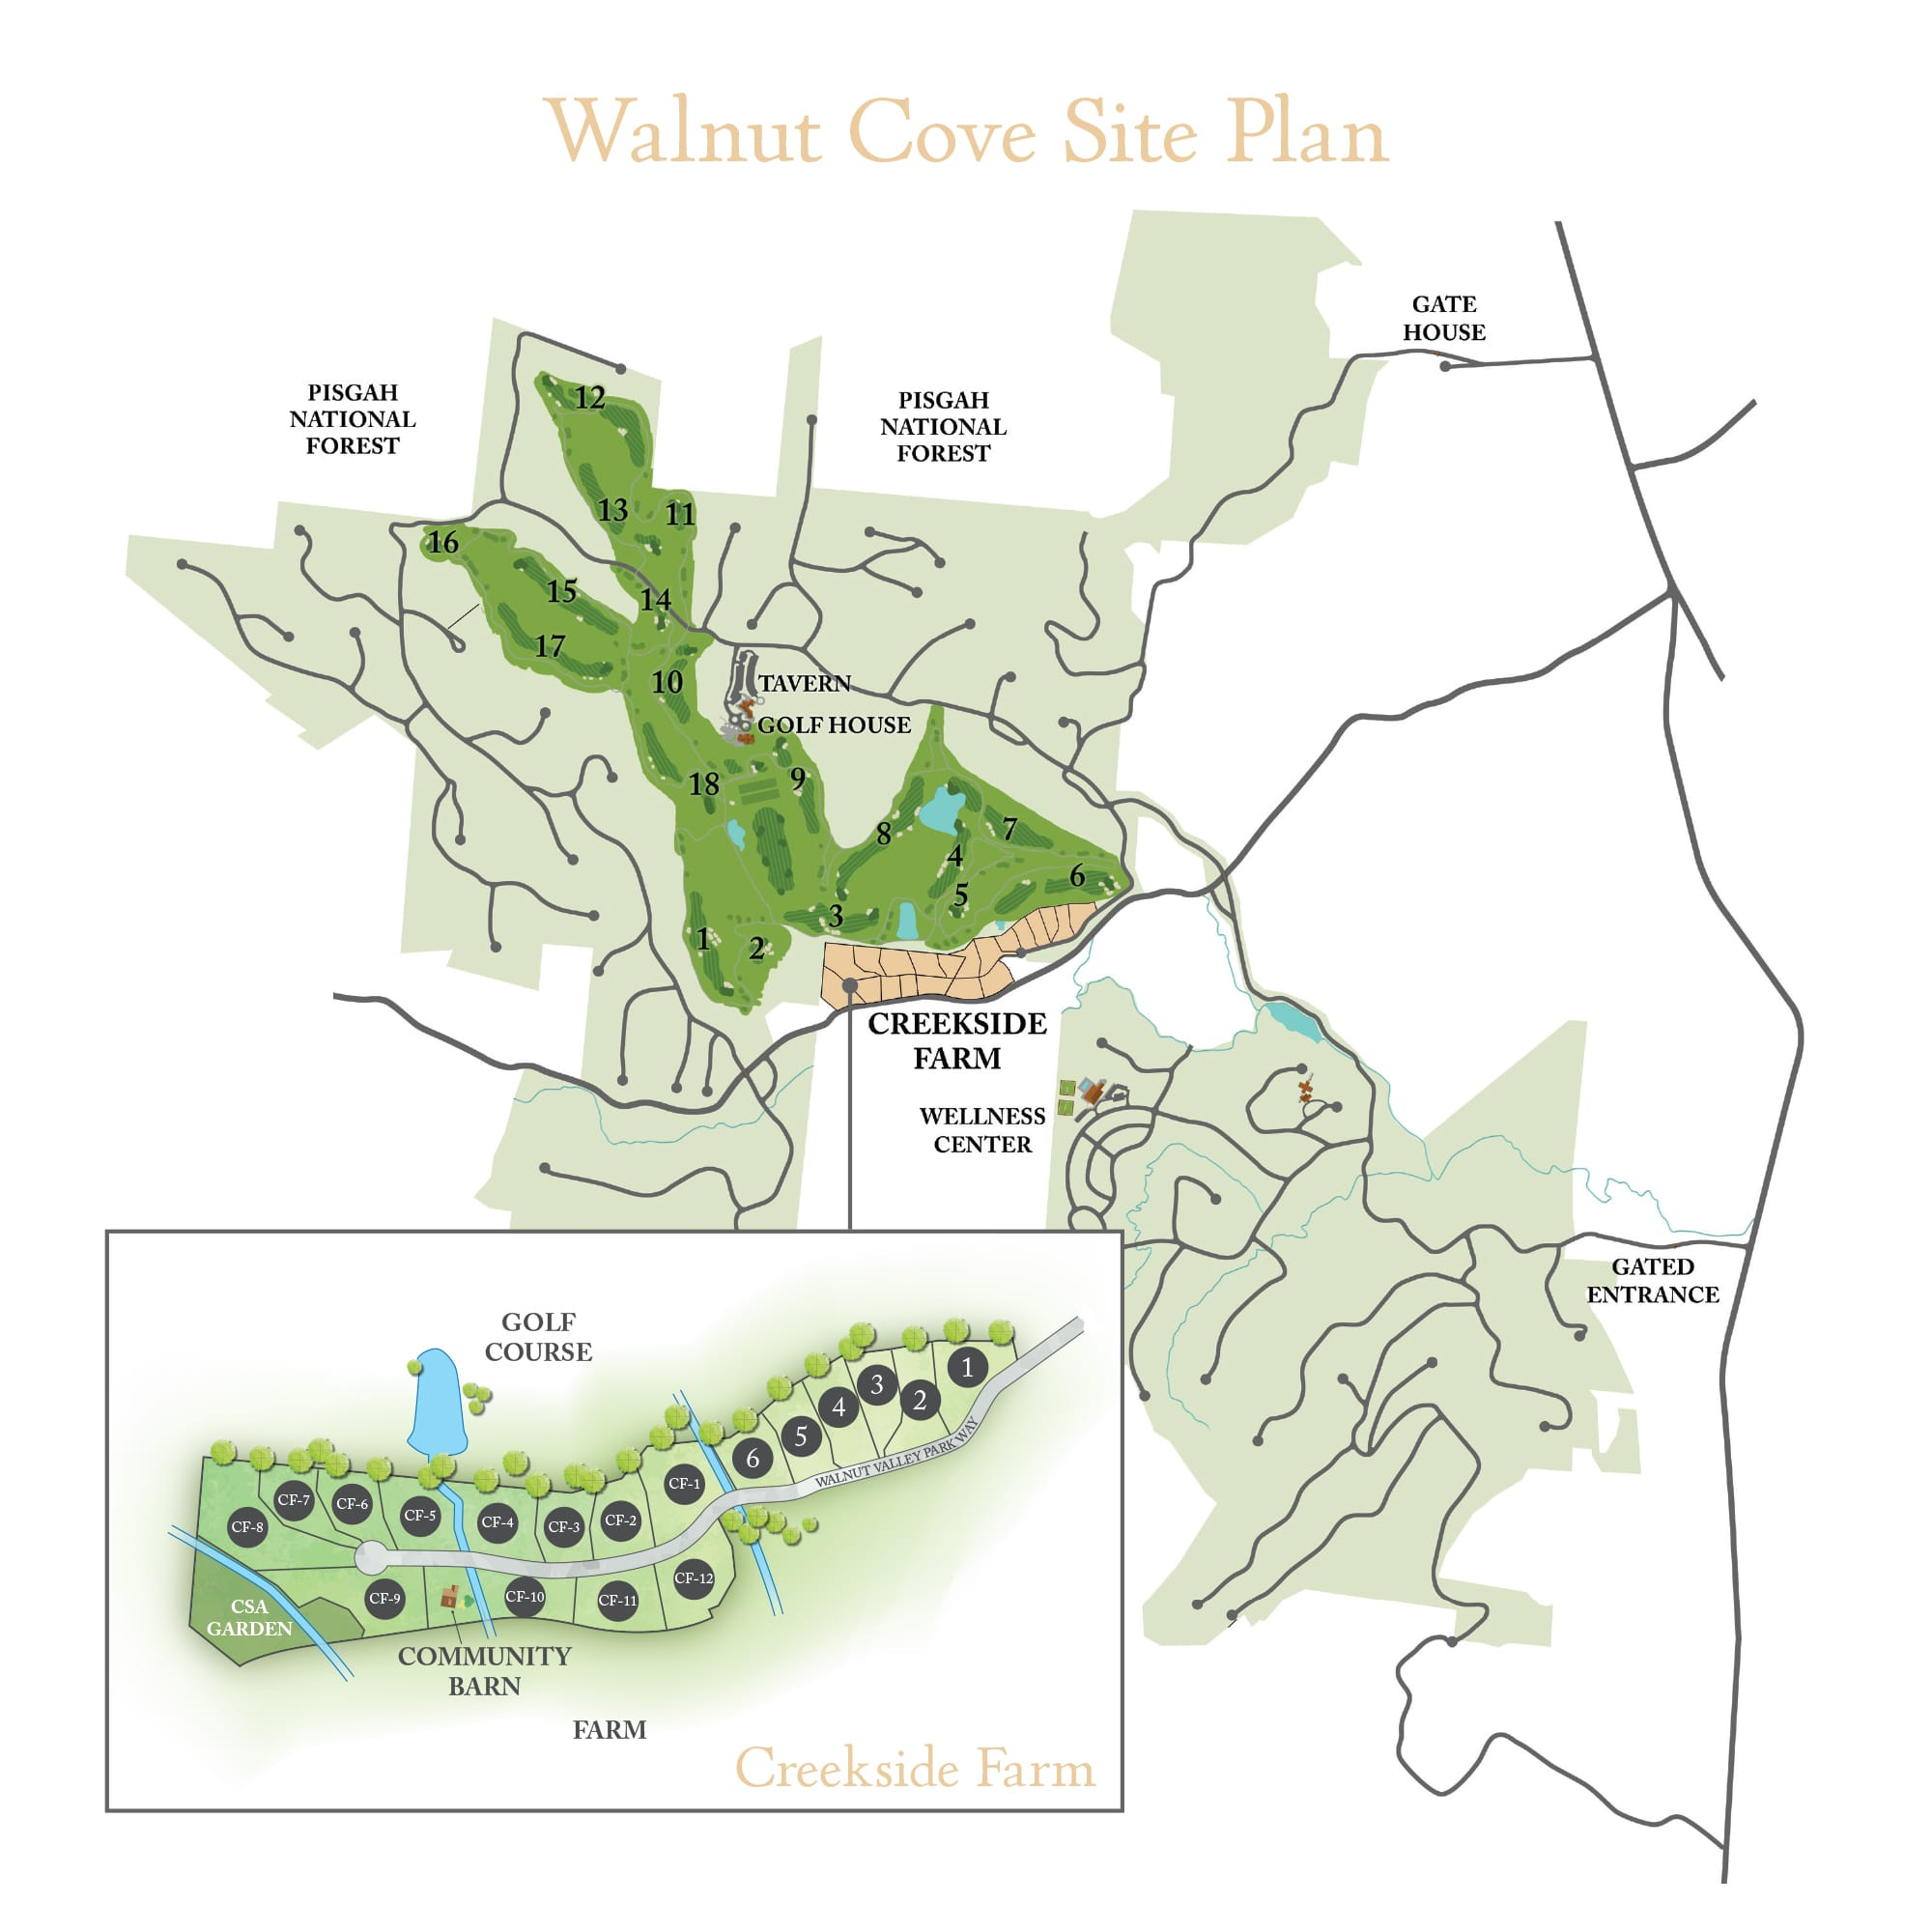 The Walnut Cove Site Plan